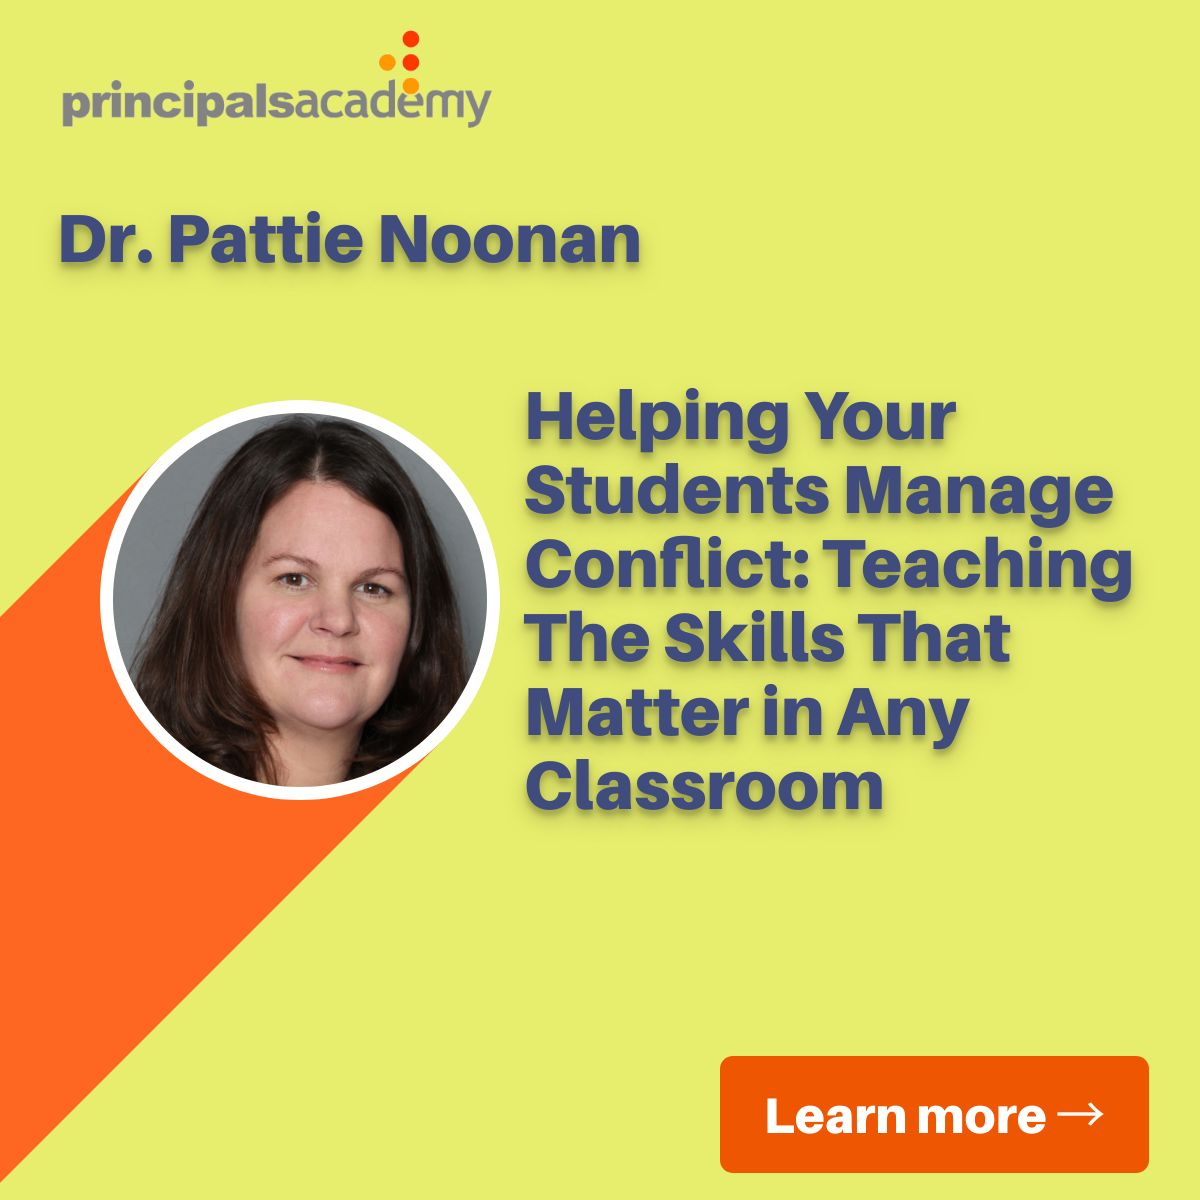 Dr Pattie Noonan-Helping your students manage conflict